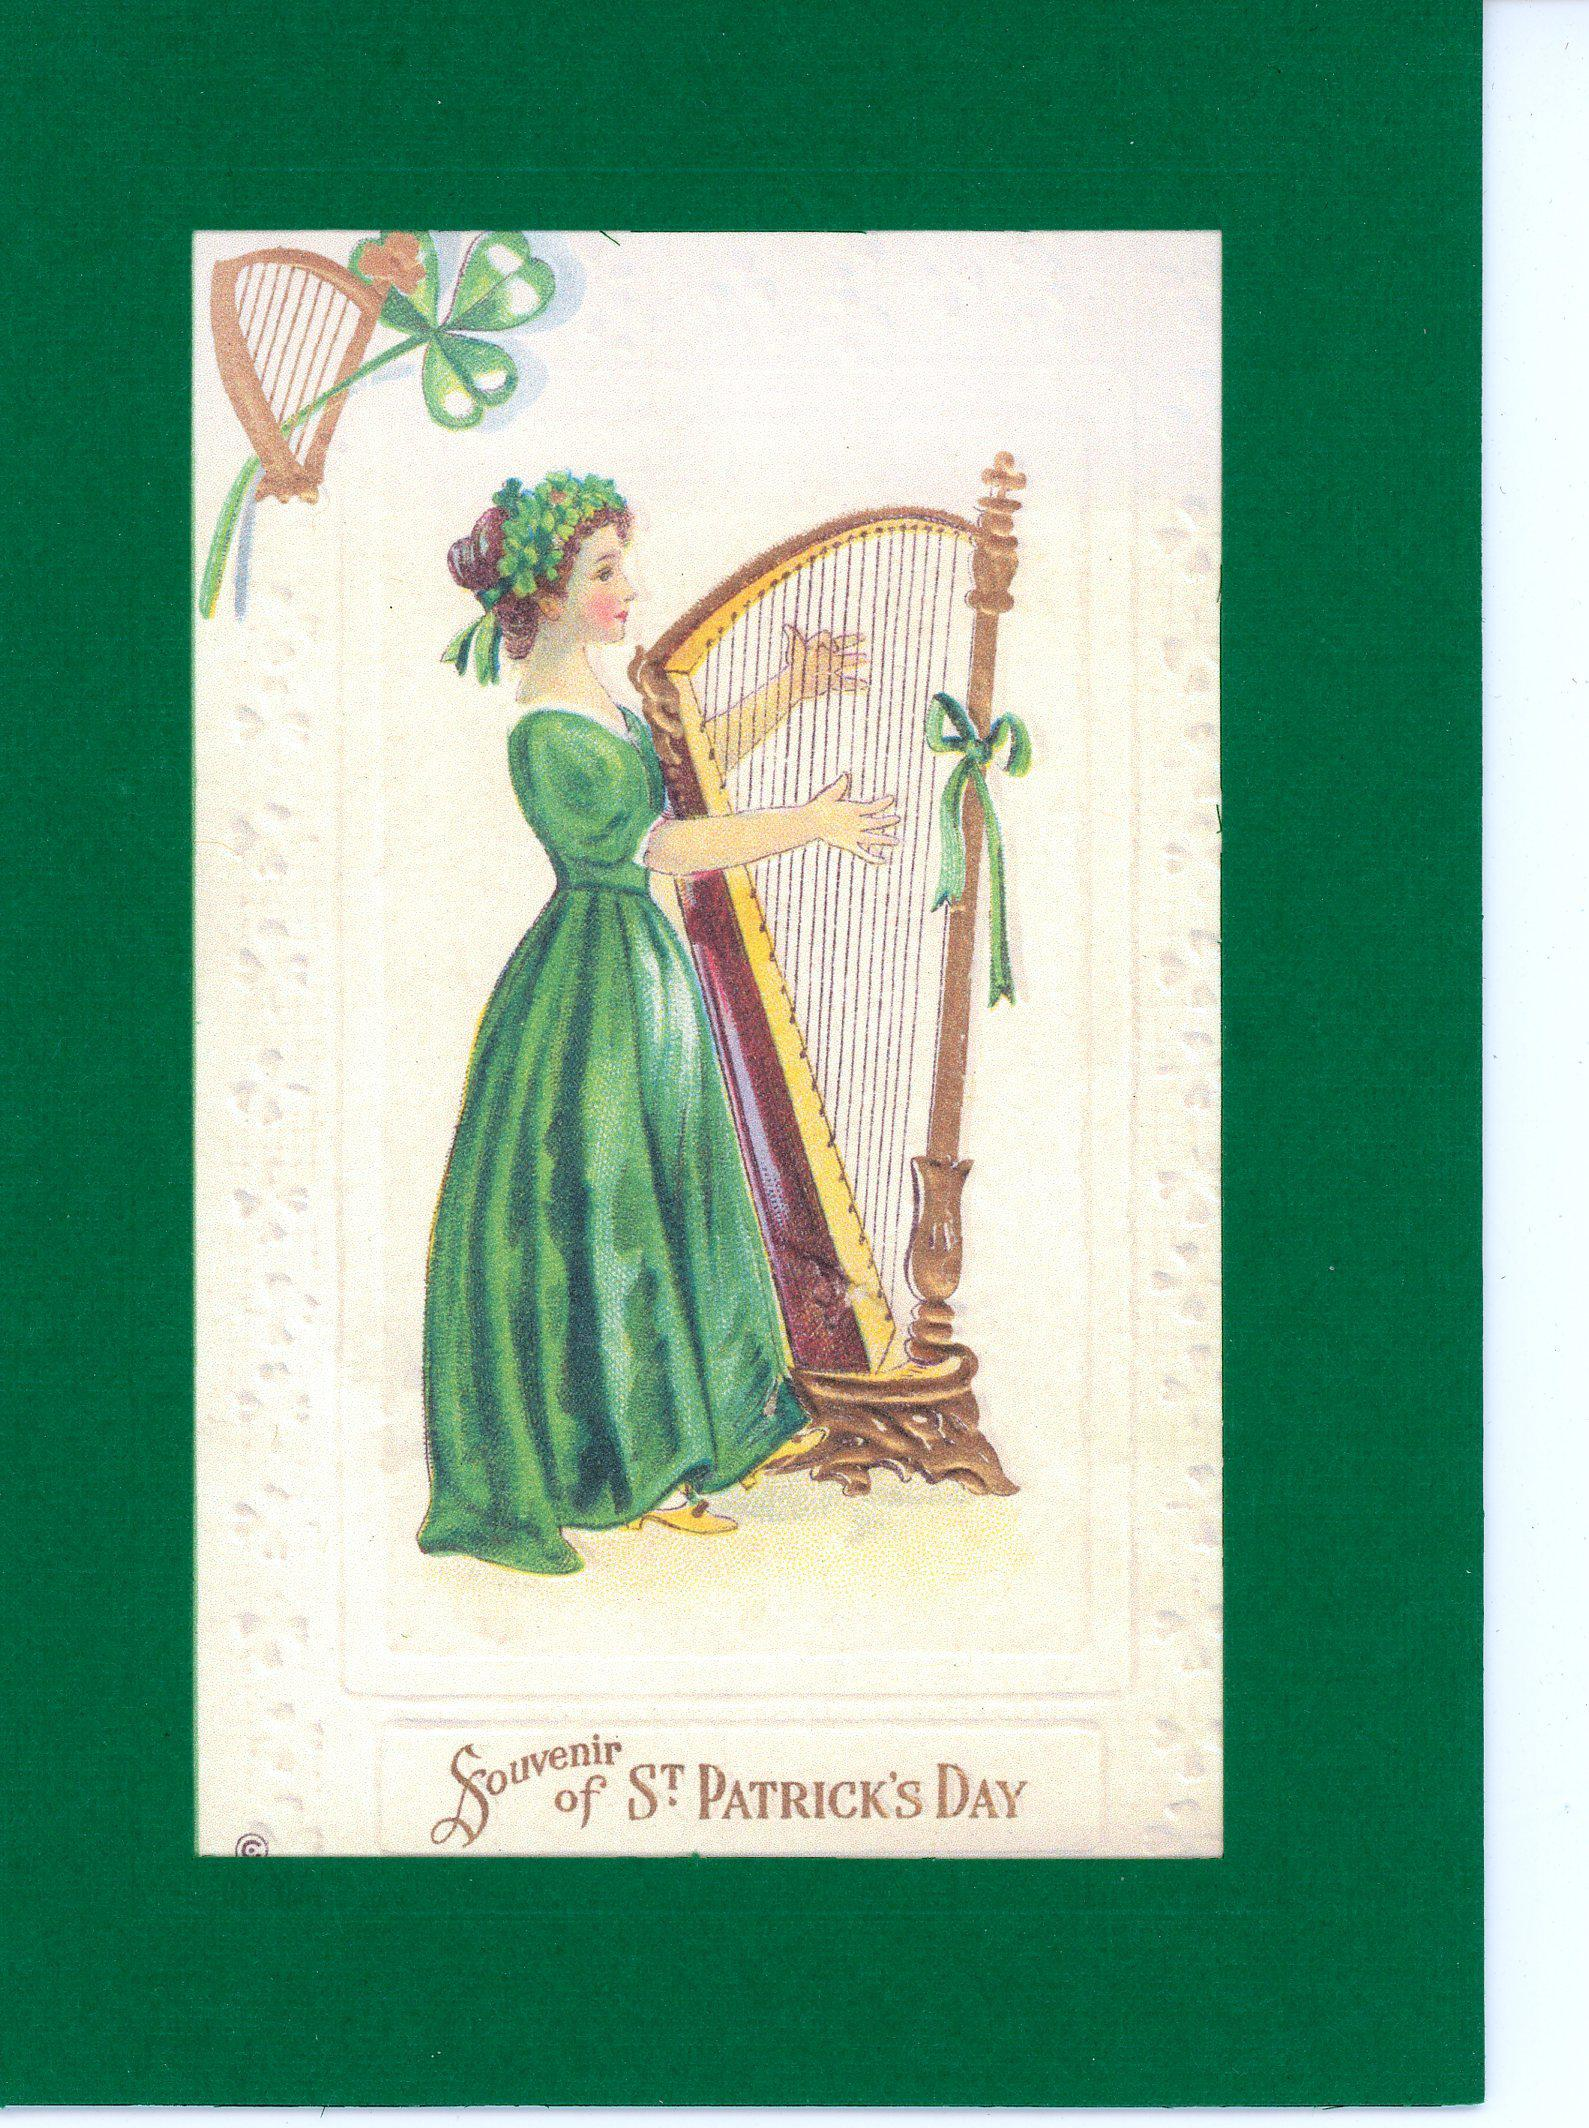 St. Patrick's Day ~ Souvenir-Greetings from the Past-Plymouth Cards